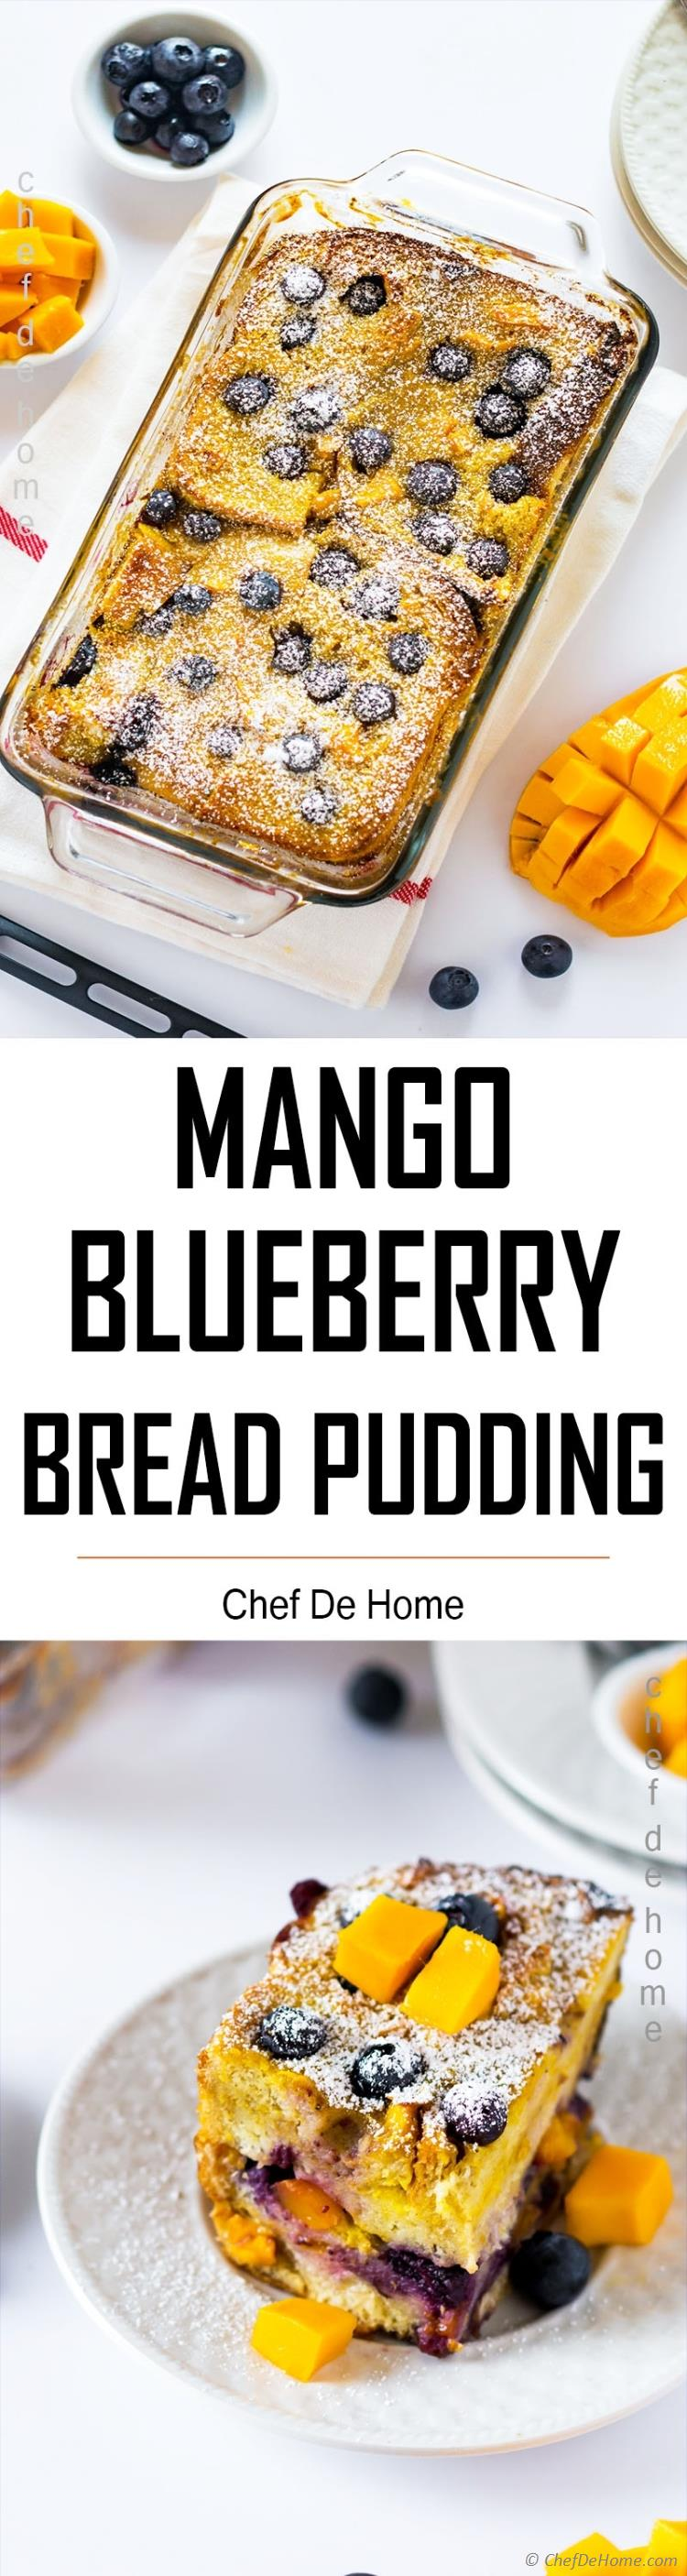 Slice of Blueberry Bread Pudding